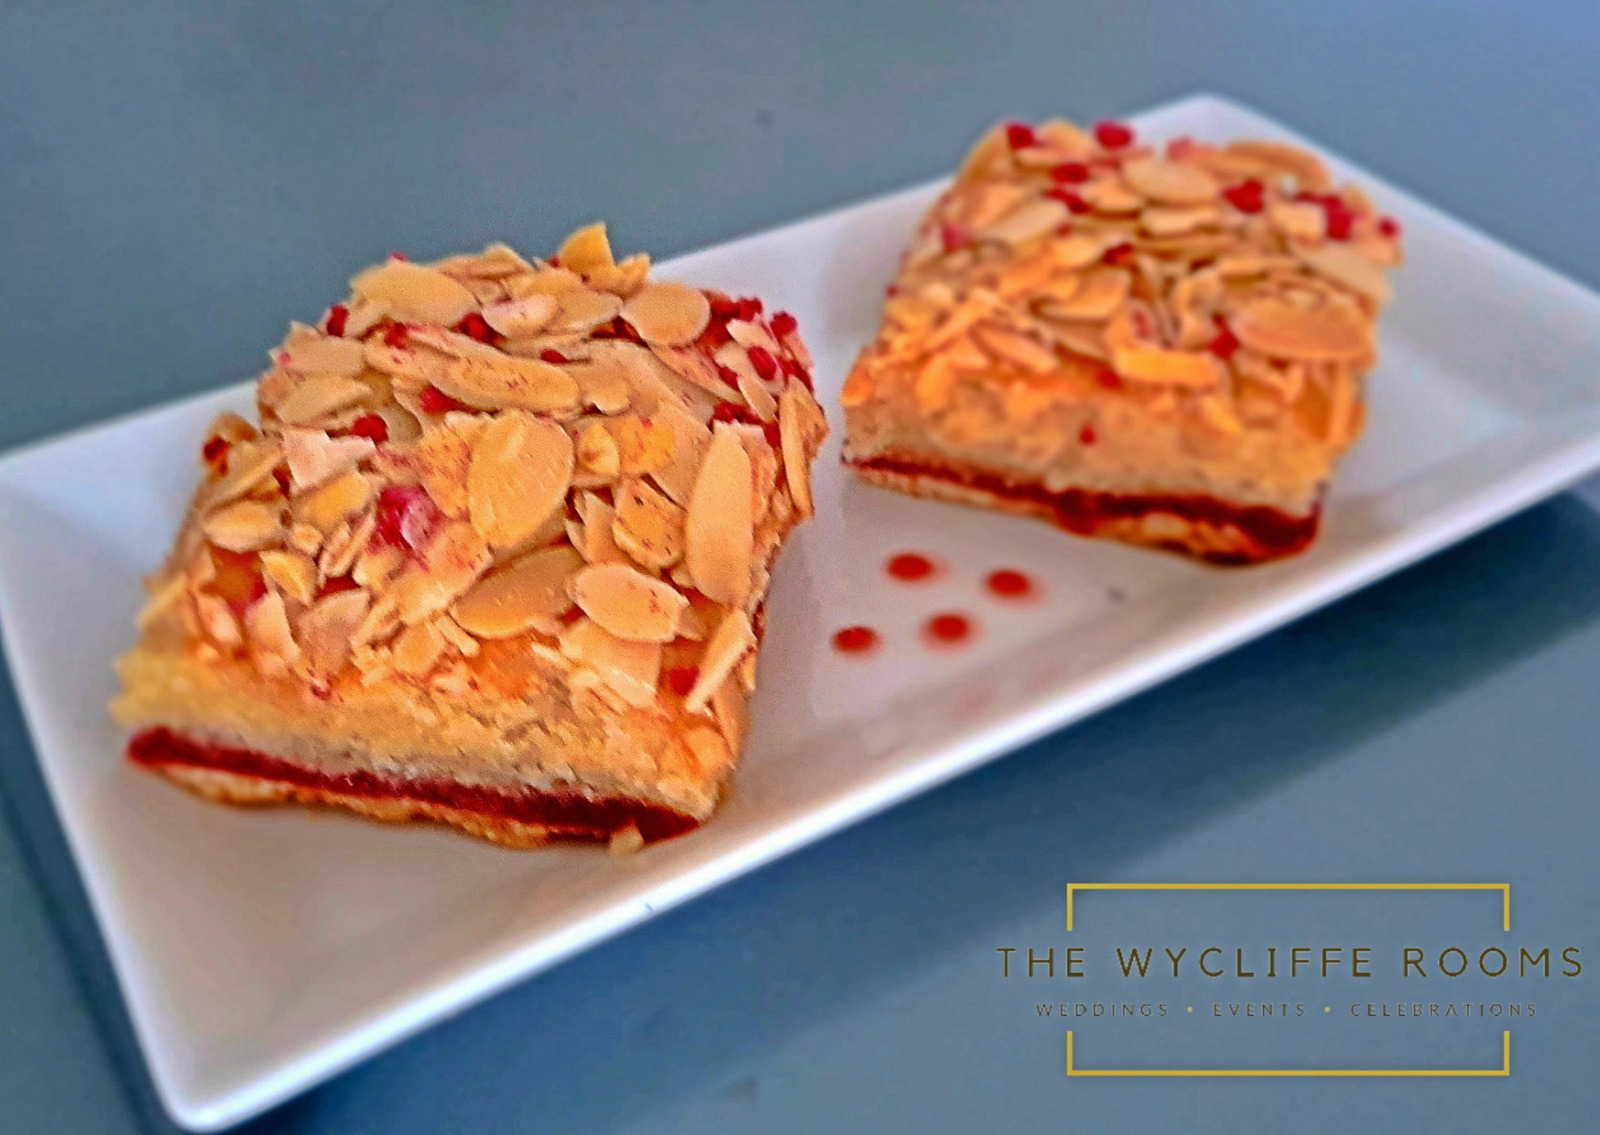 Cherry and Almond Bakewell